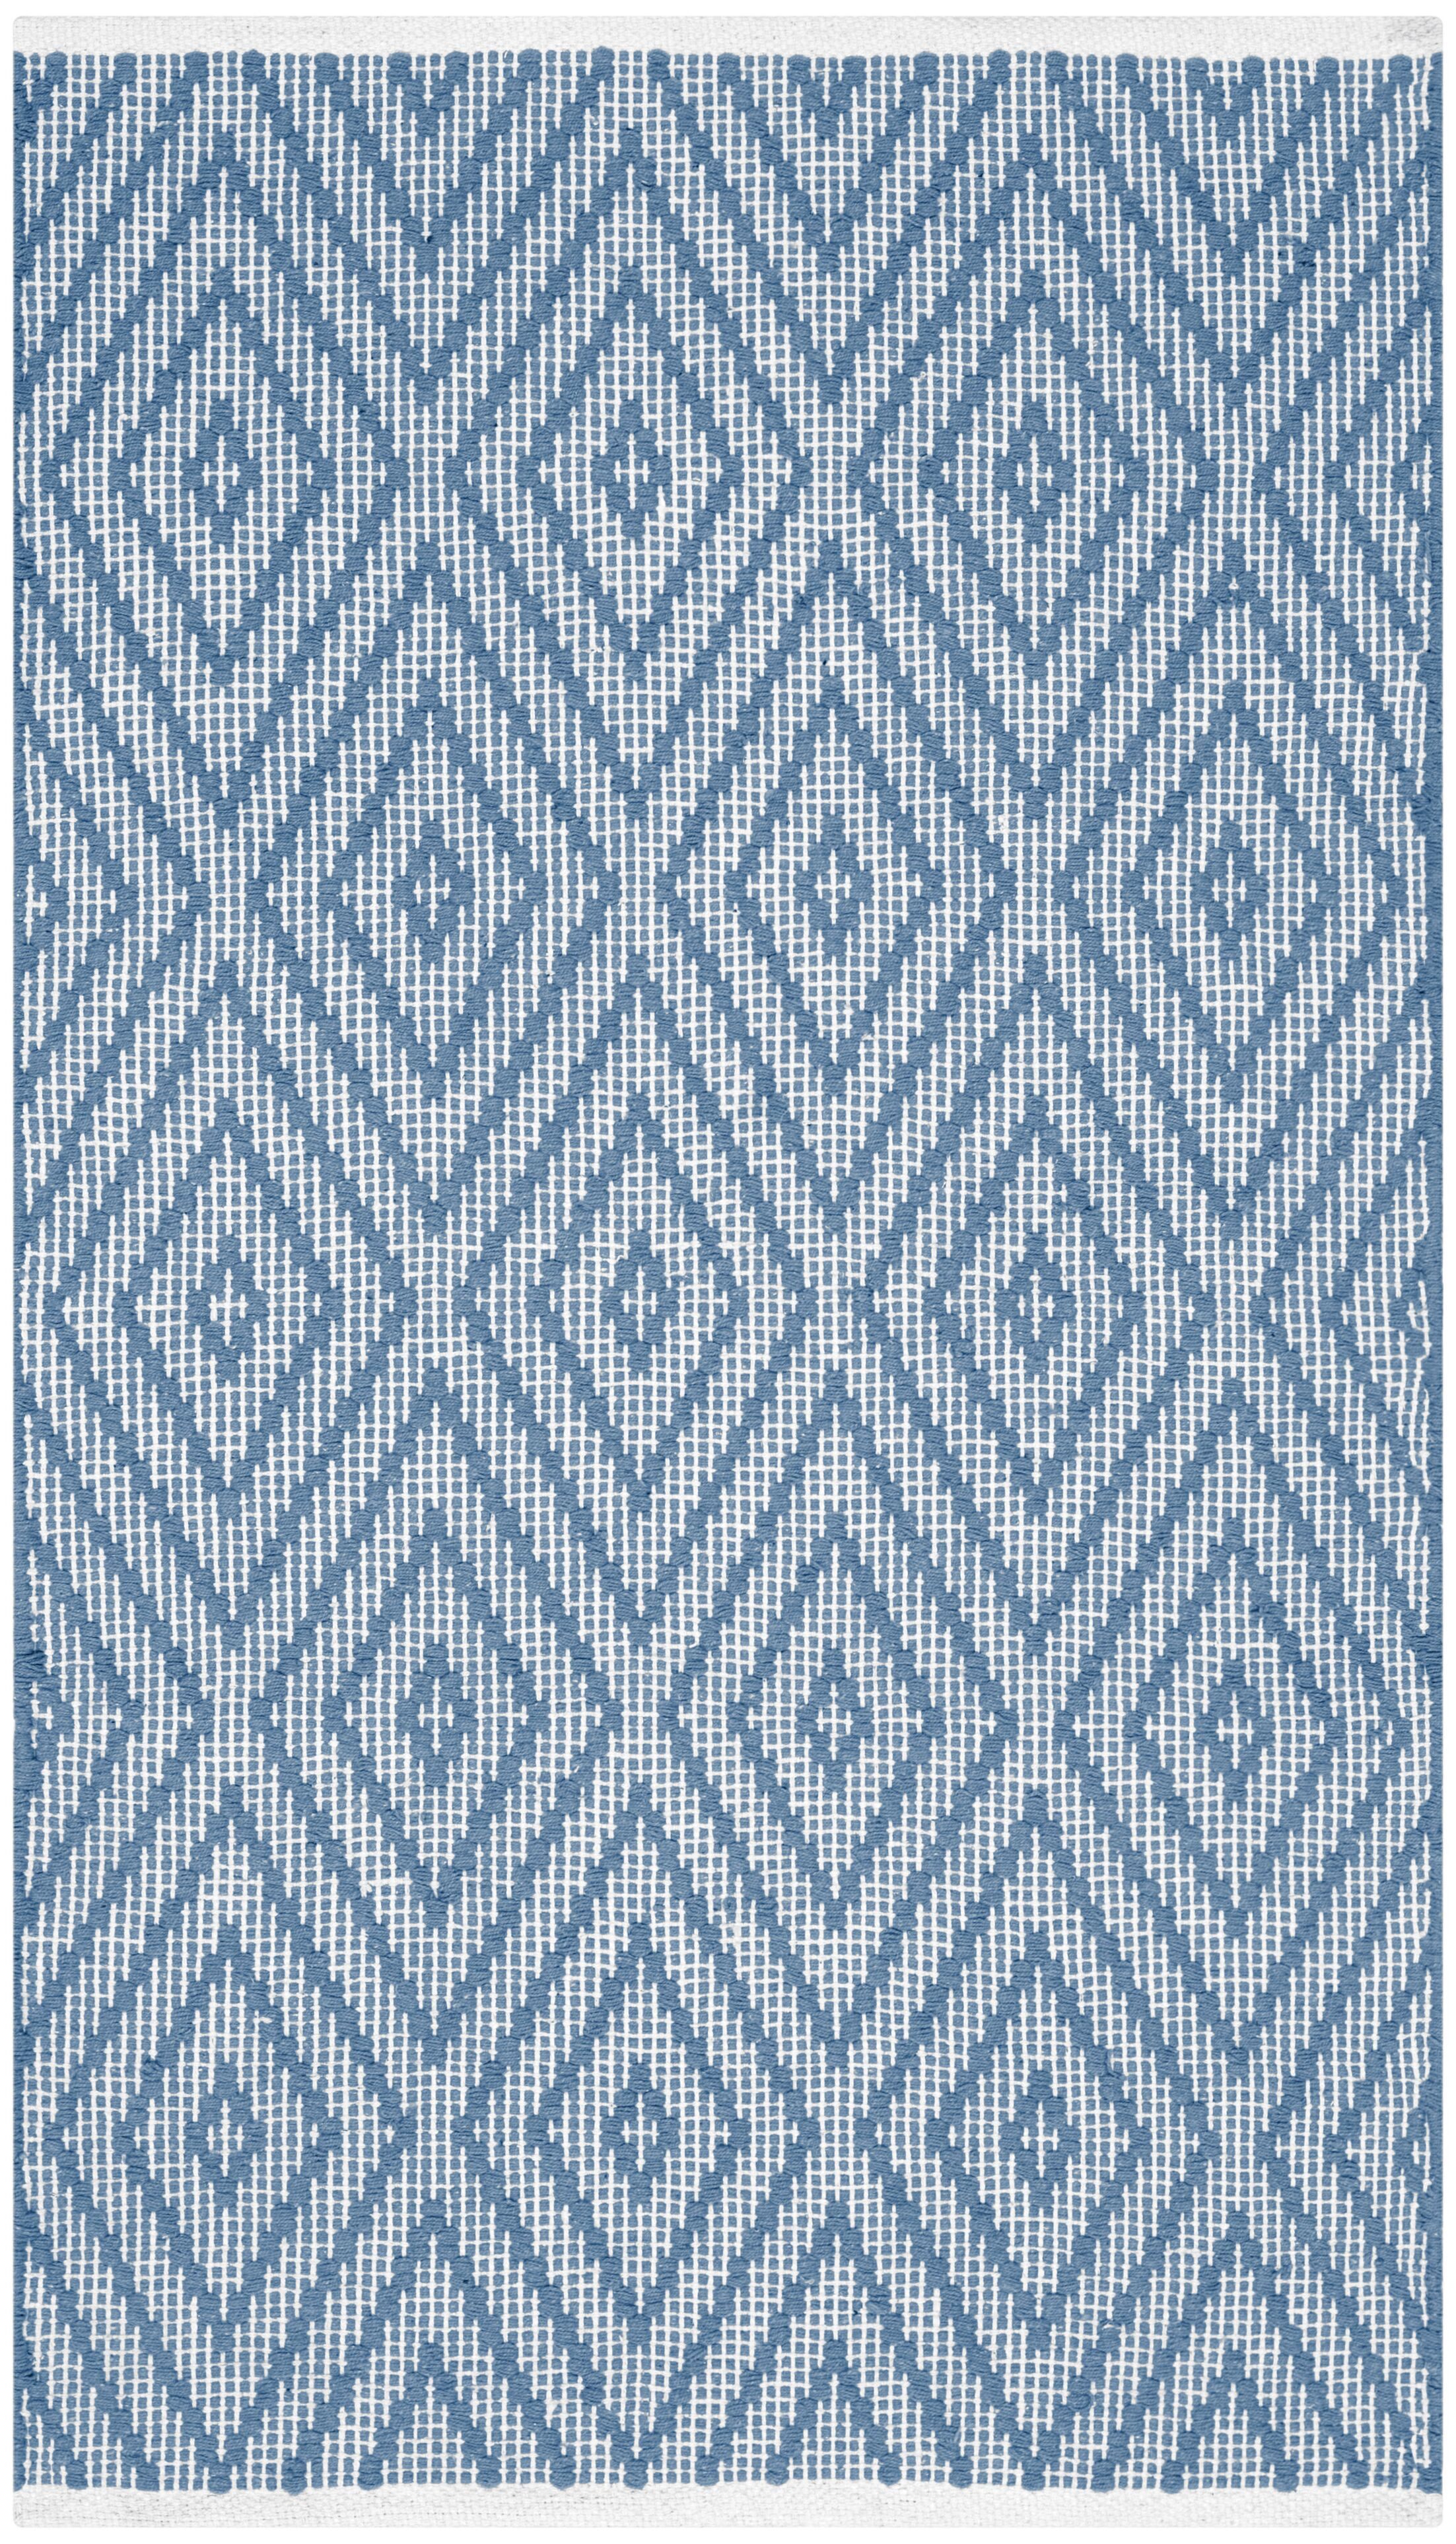 Achilles Hand-Woven Cotton Blue Area Rug Rug Size: Rectangle 3' x 5'